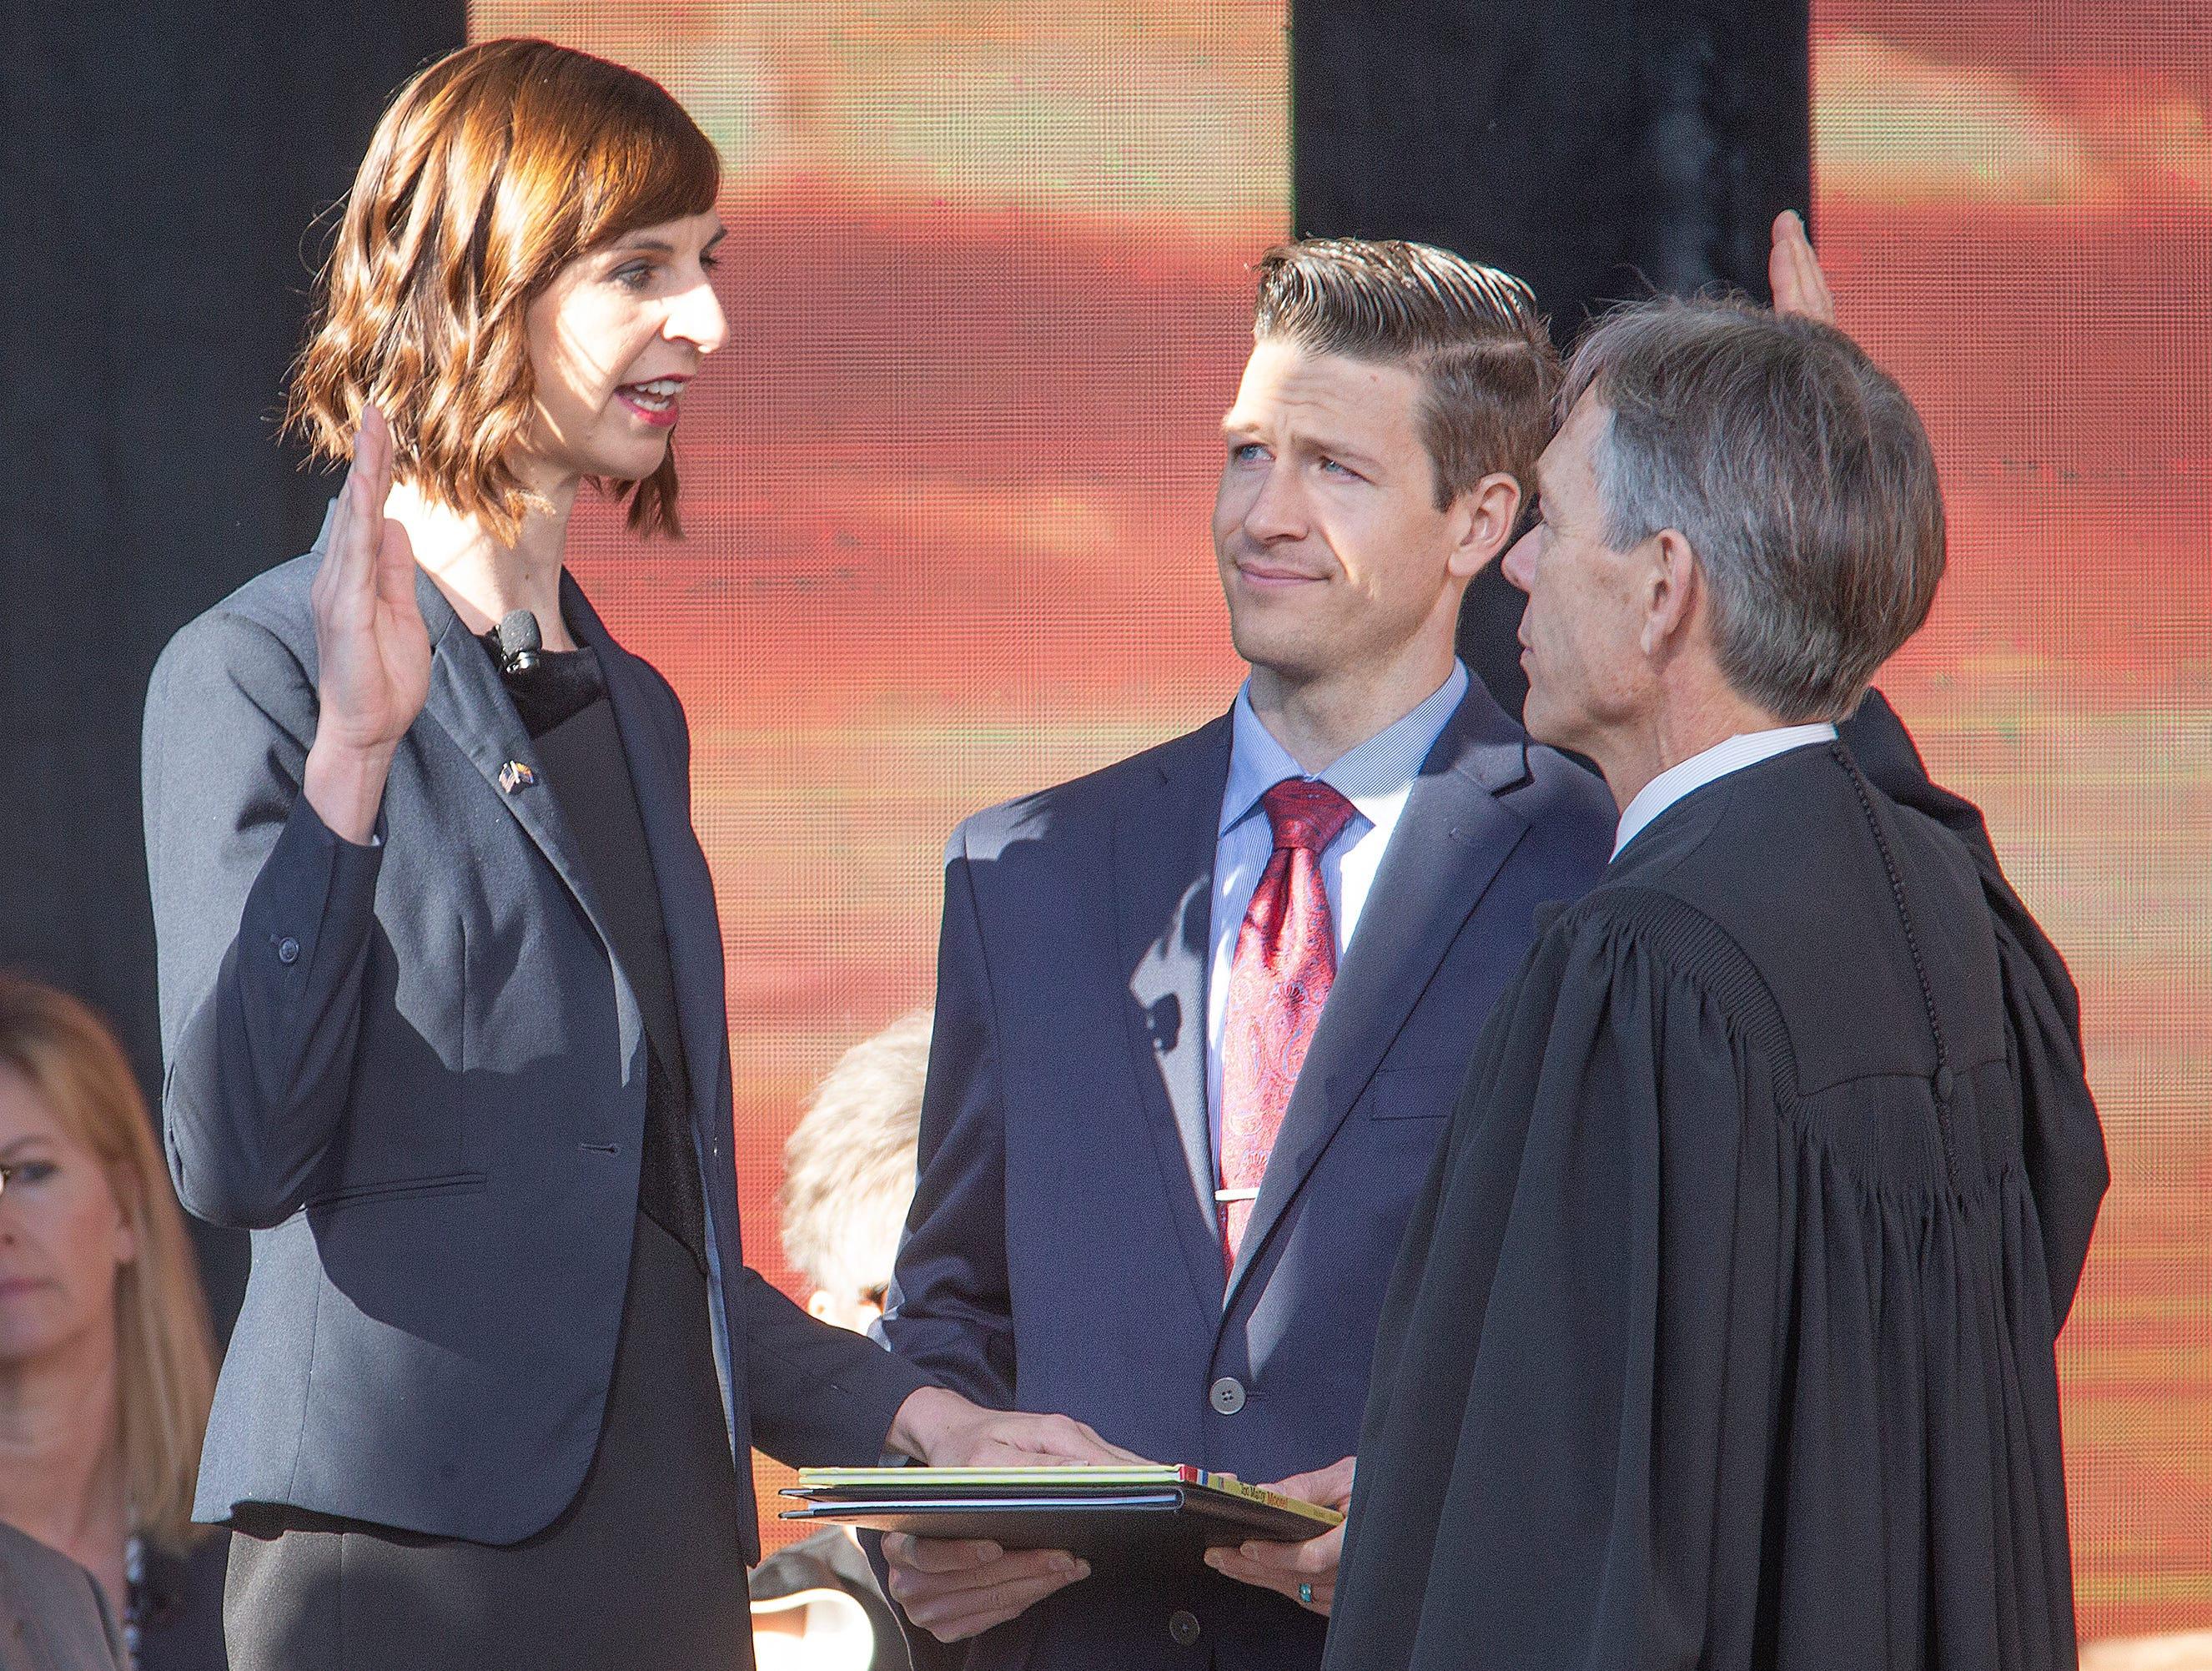 Kathy Hoffman is sworn in as Arizona Superintendent of Public Instruction by Arizona Supreme Court Chief Justice Scott Bales at the Arizona Capitol in Phoenix at the 2019 State of Arizona Inauguration ceremony.  Gov. Doug Ducey , Secretary of State Katie Hobbs, Attorney General Mark Brnovich, State Treasurer Kimberly Yee, Hoffman and State Mine Inspector Joe Hart were all sworn in to office during the ceremony.